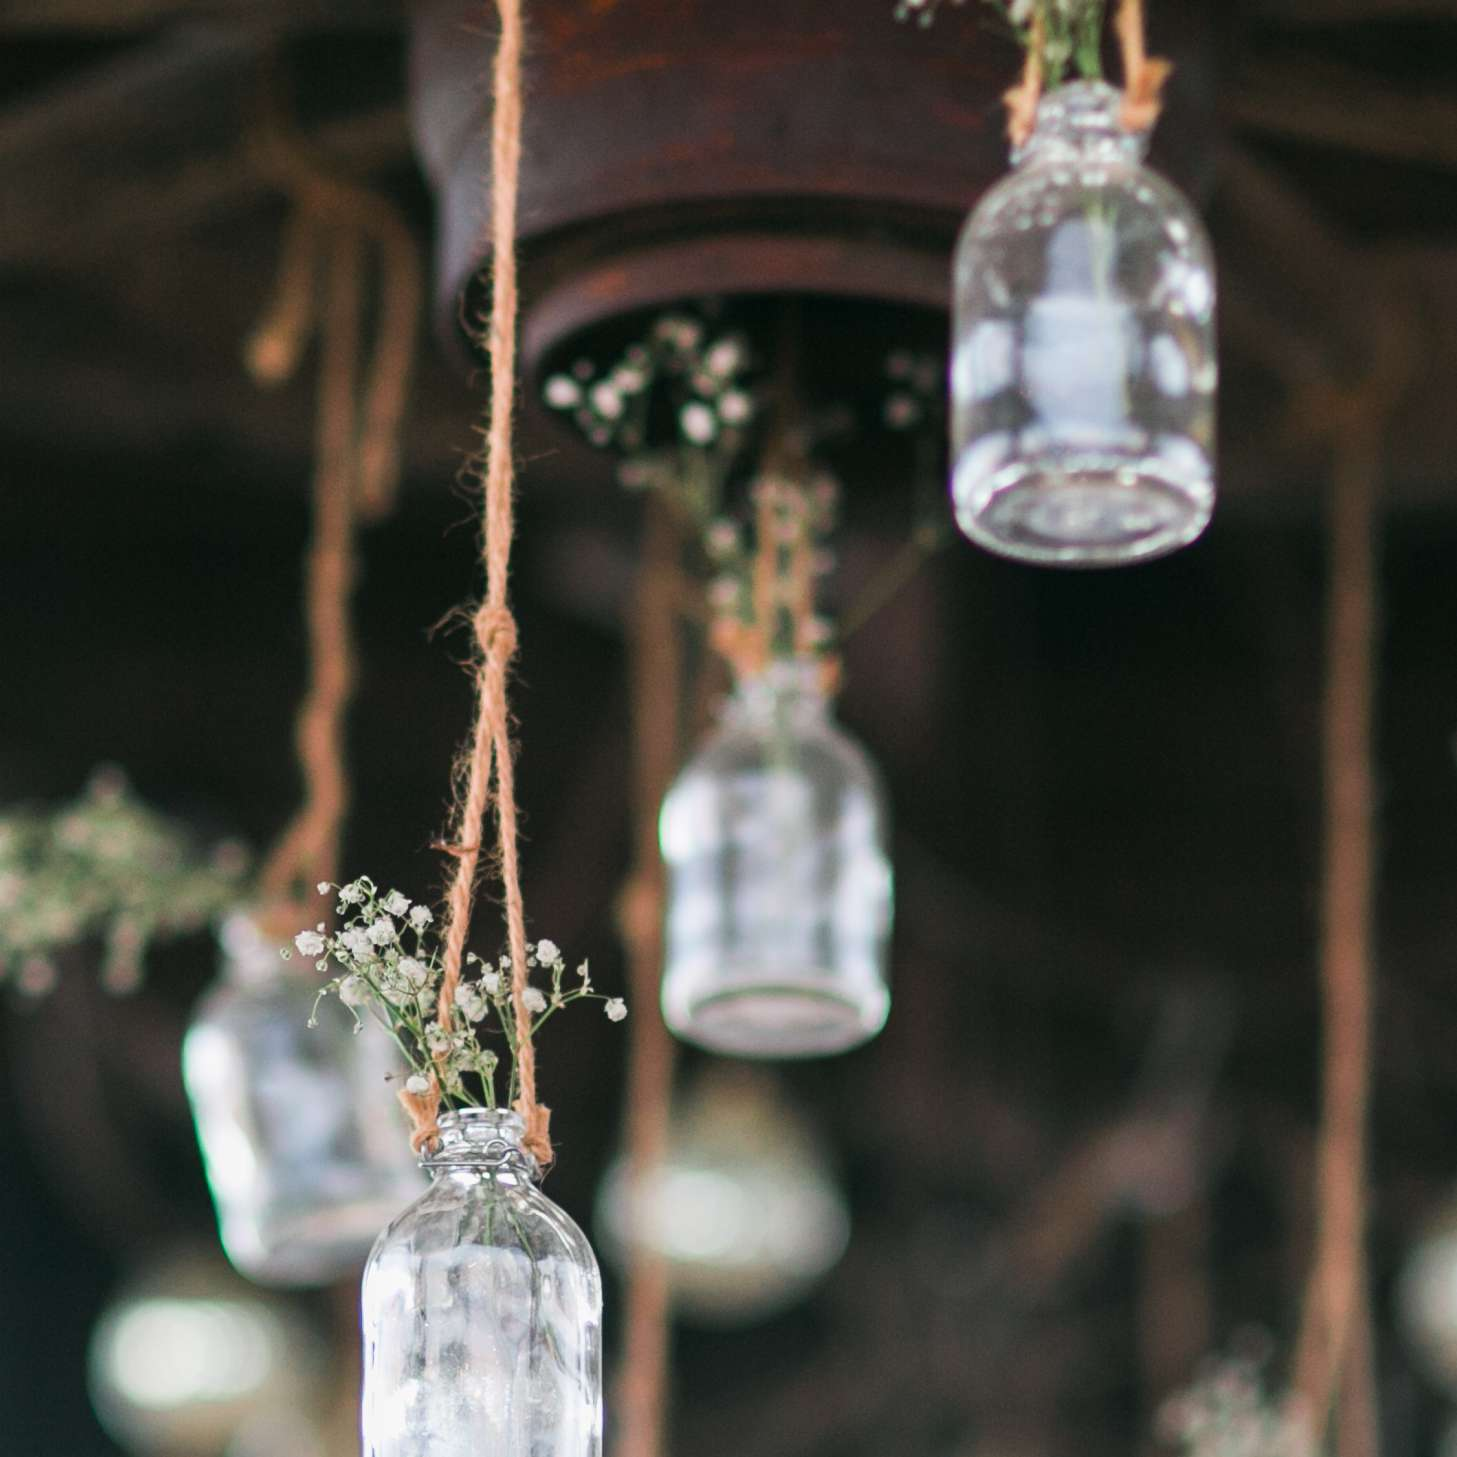 Hanging Baby's breath vessels